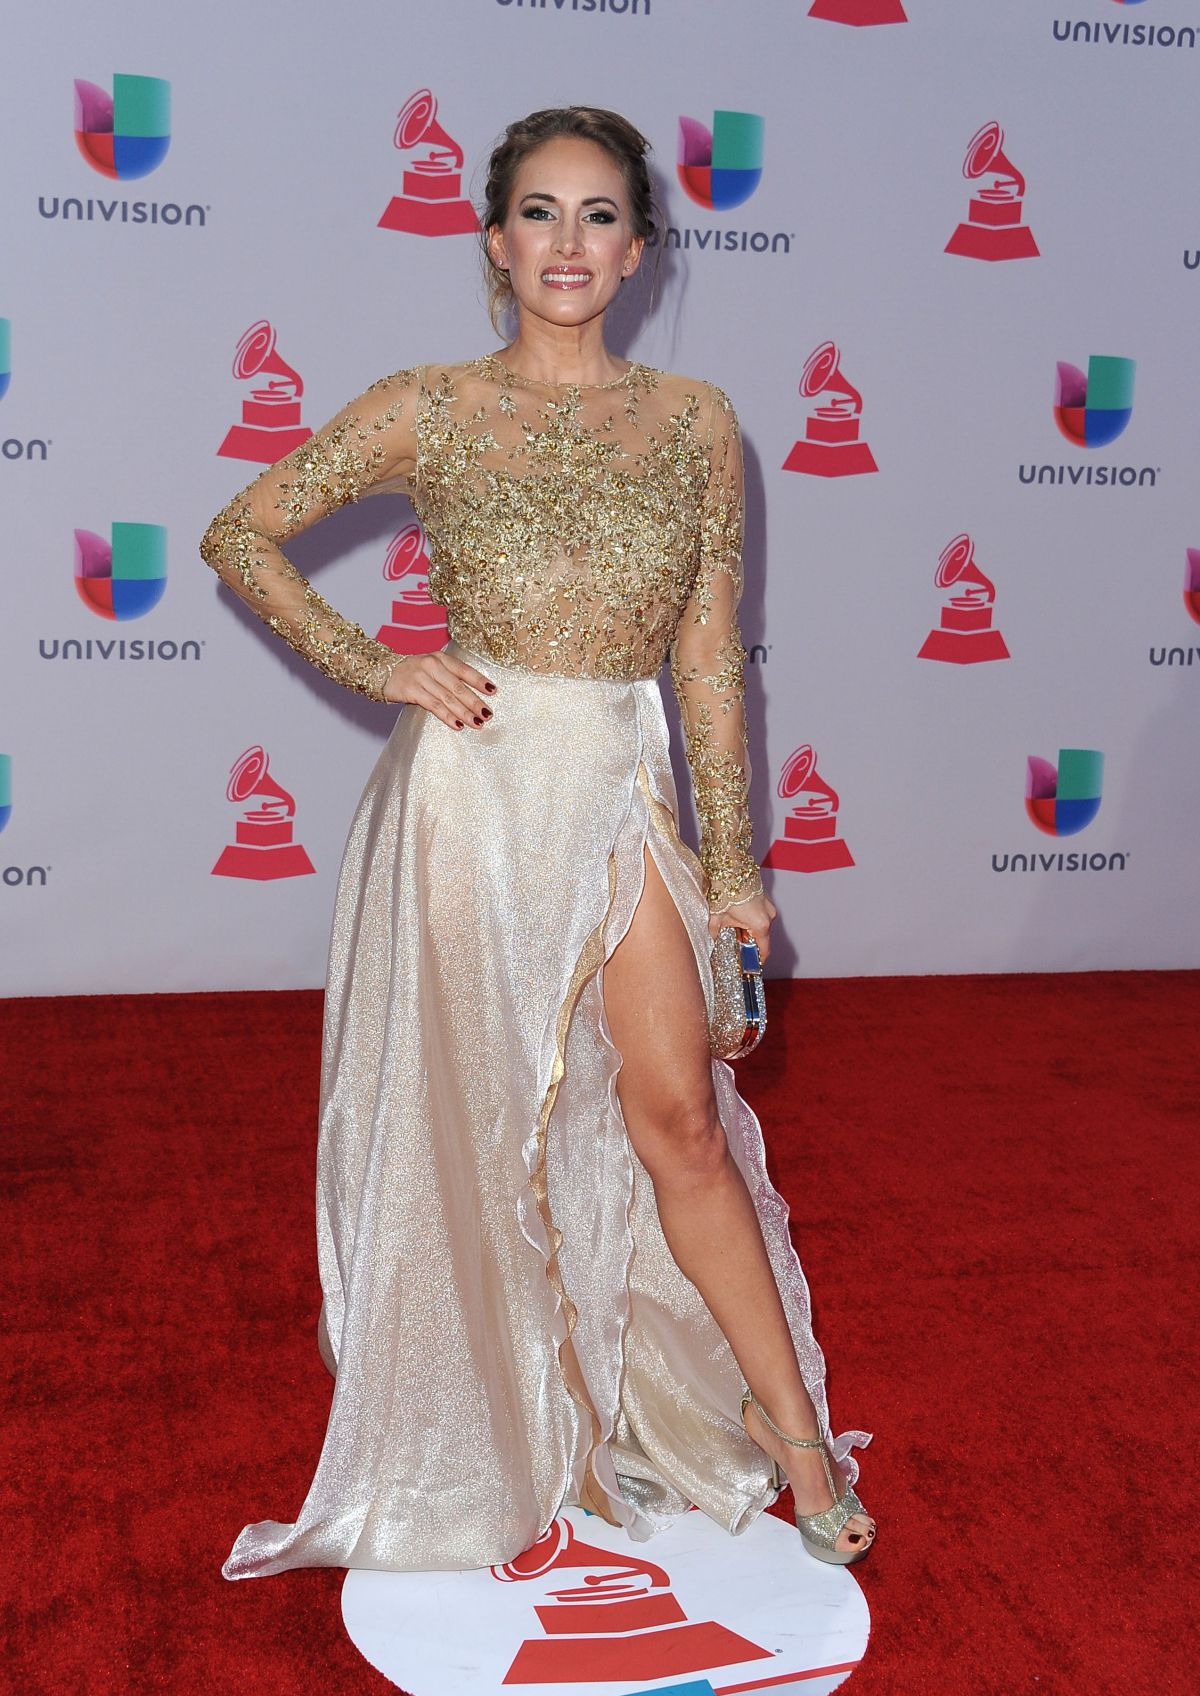 ERIKA BRUNI at 2015 Latin Grammy Awards in Las Vegas 11/18/2015